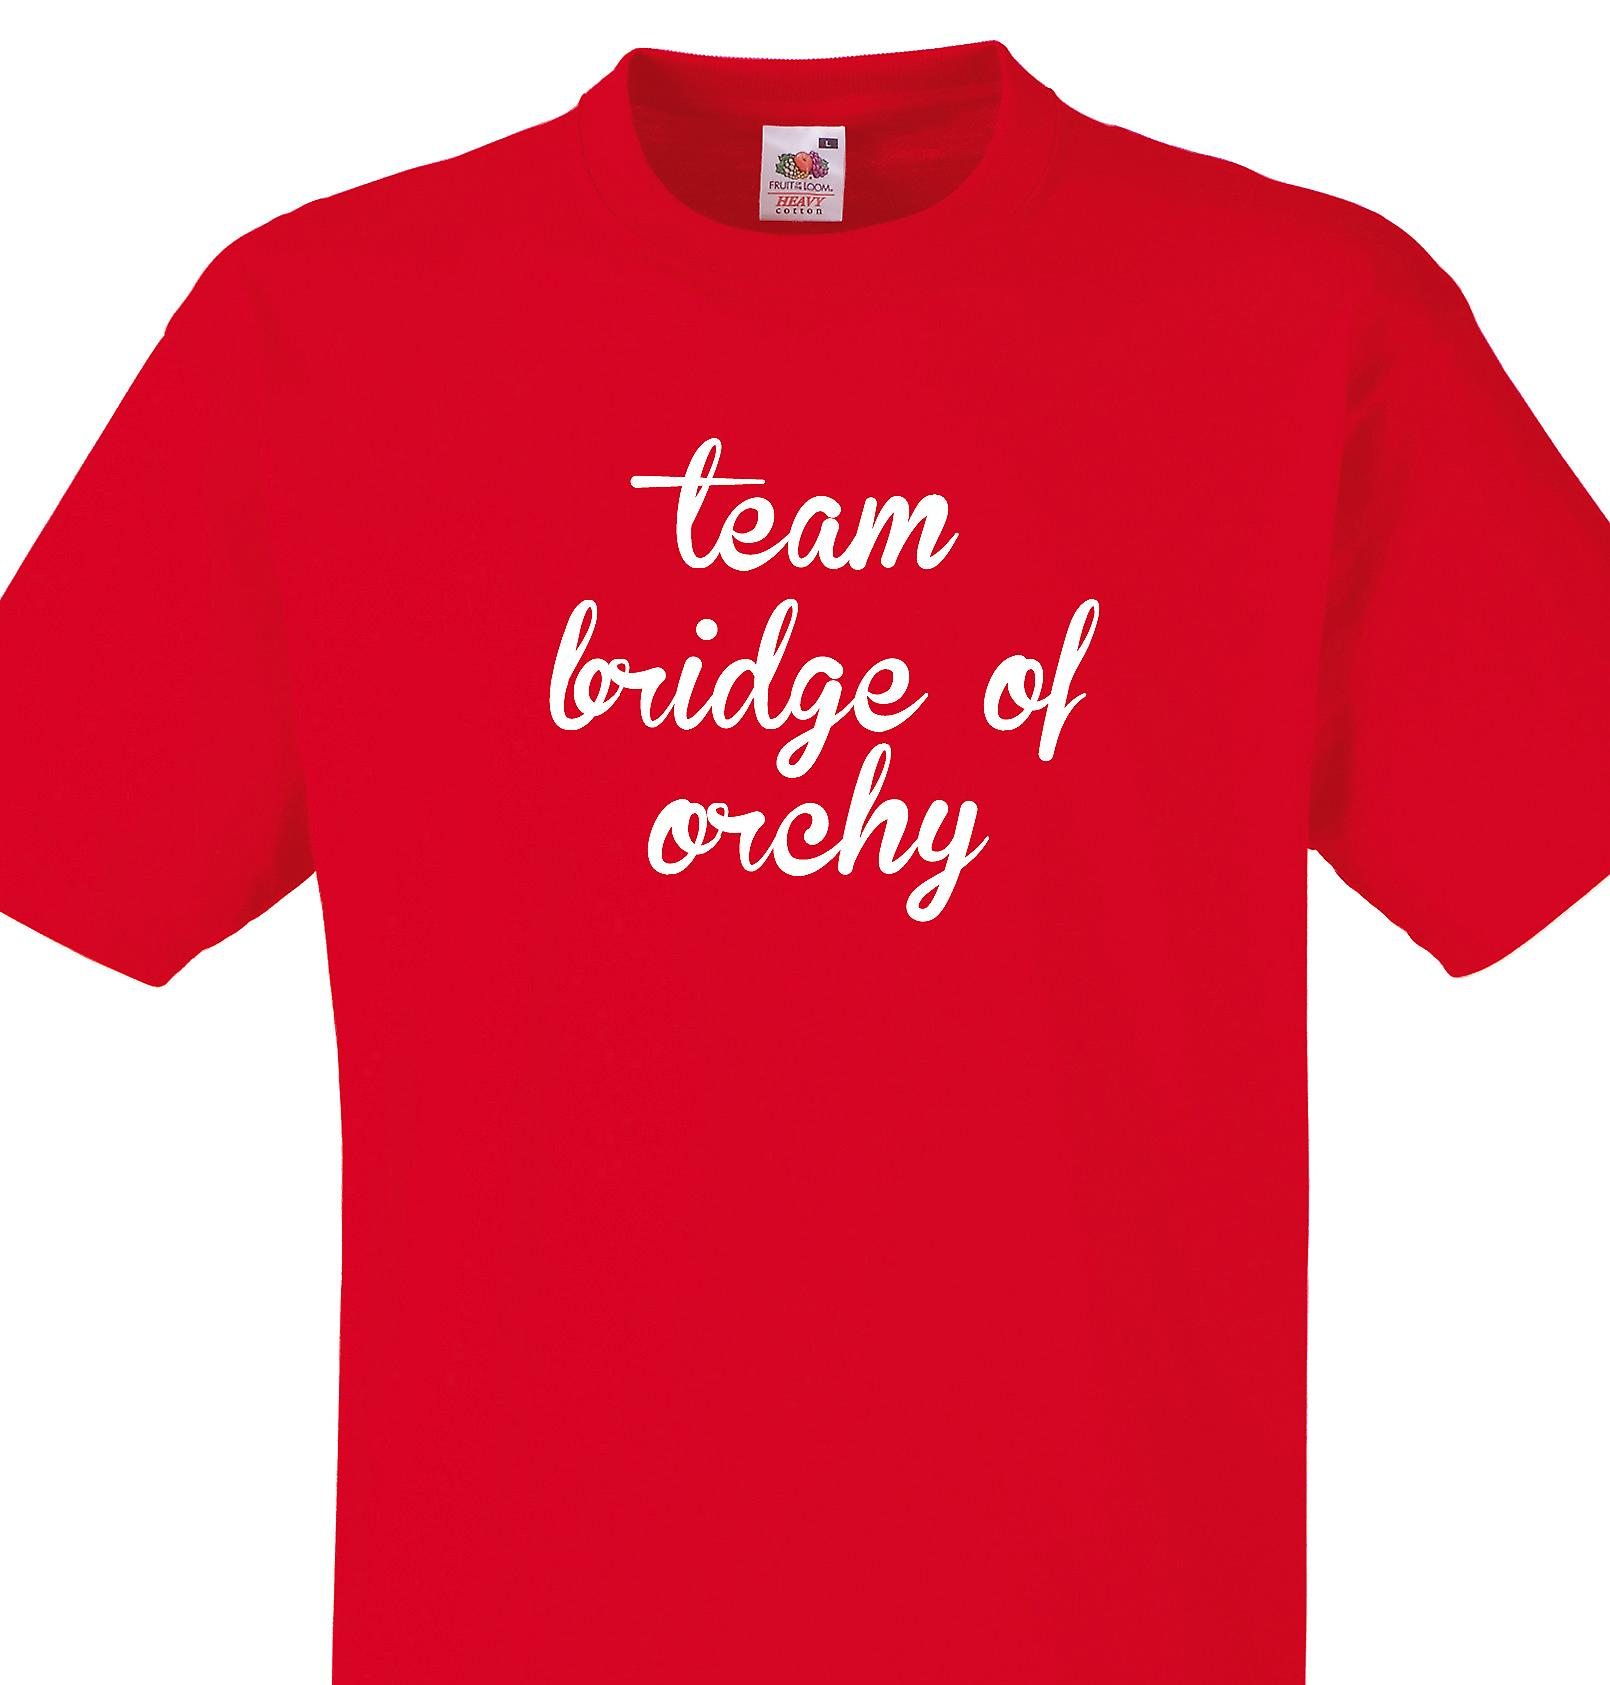 Team Bridge of orchy Red T shirt